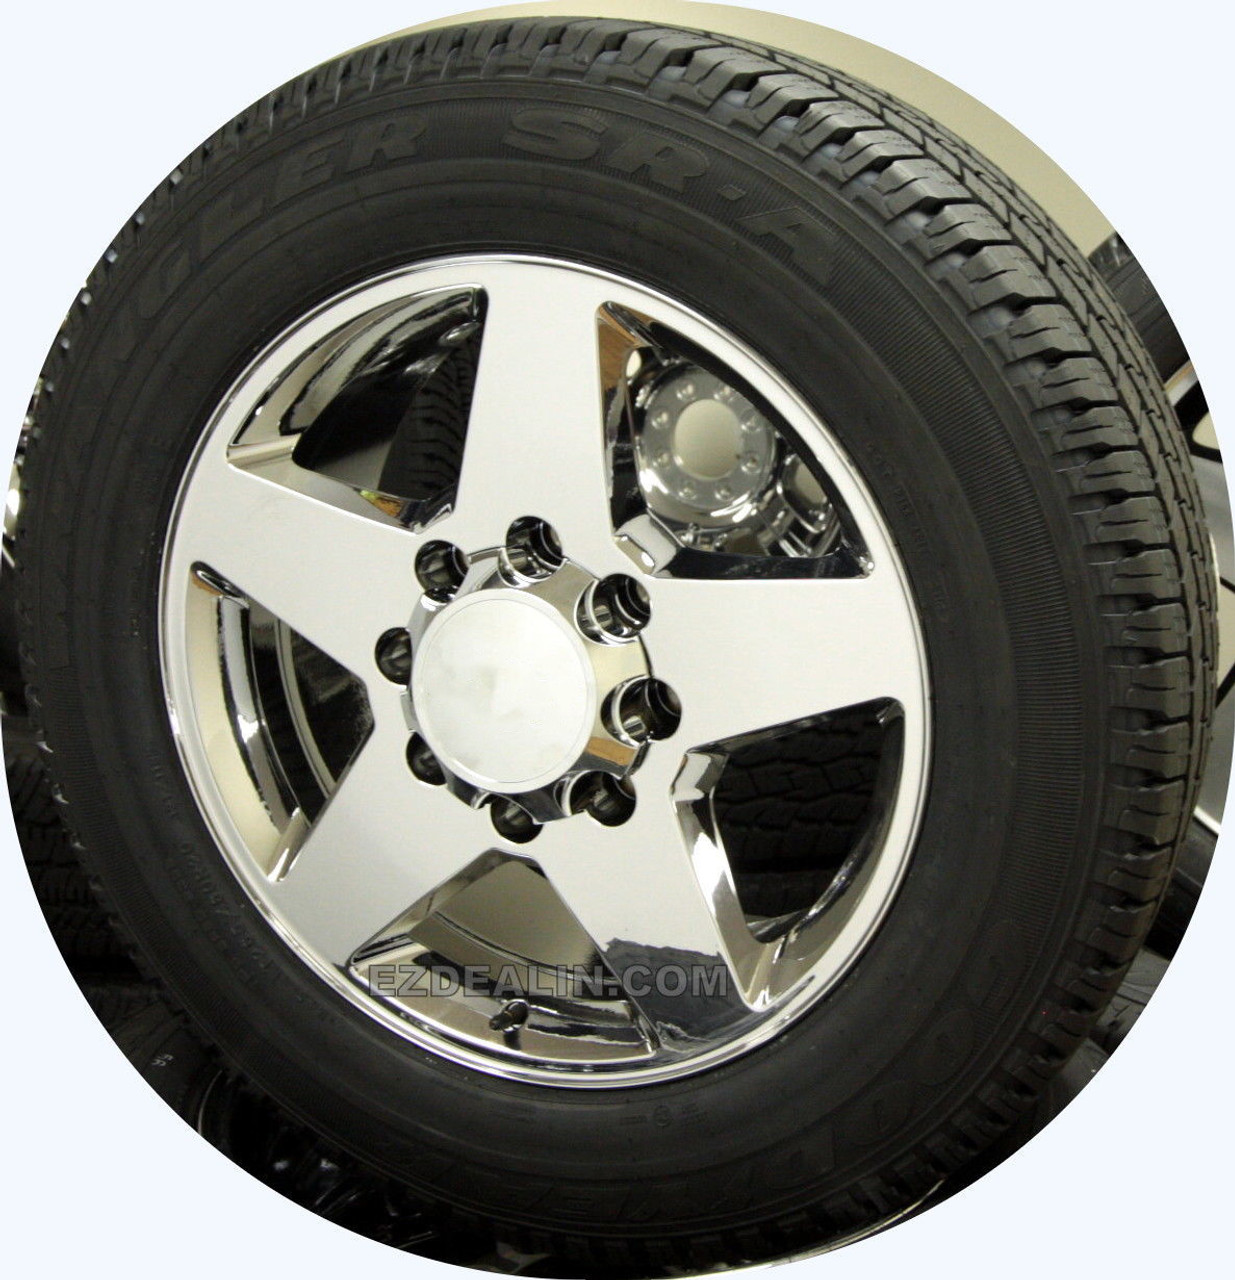 """Chrome 20"""" 8 Lug 8-180 Wheels With Goodyear Tires for 2011-2021 Chevy Silverado HD 2500 3500 - New Set of 4"""